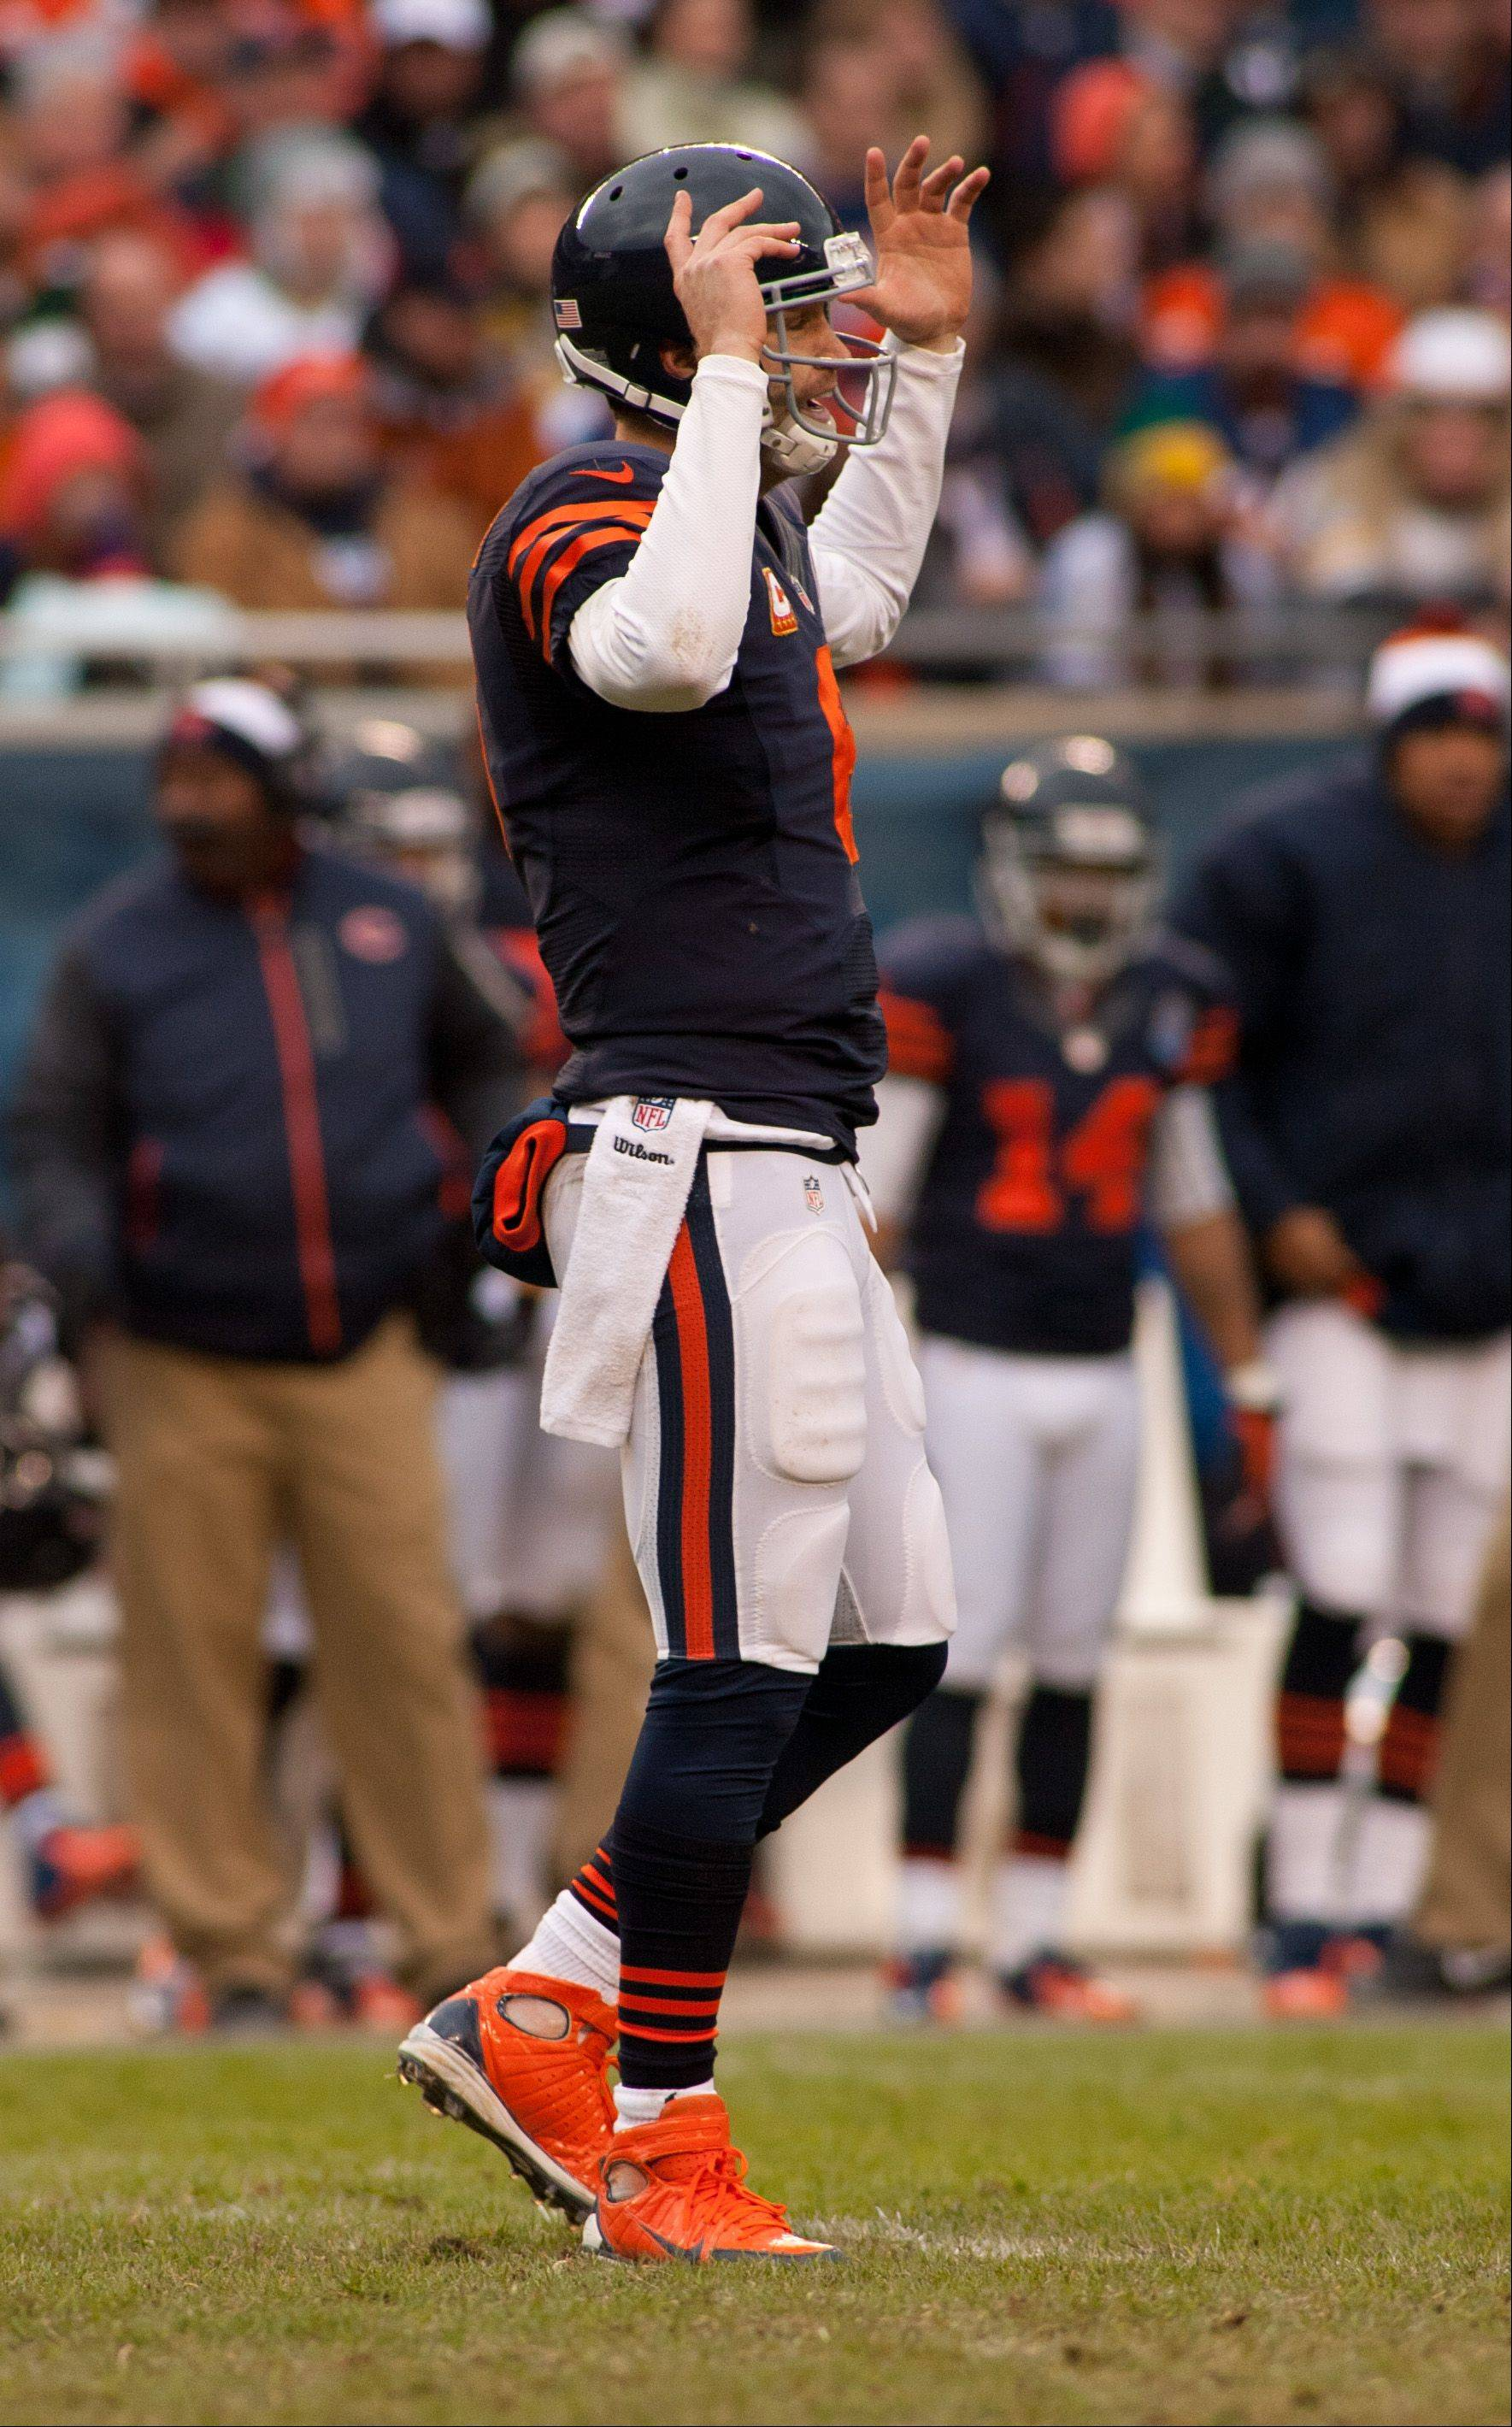 The Bears� Jay Cutler shows second half frustration after his down field pass, during Sunday�s game at Soldier Field in Chicago.